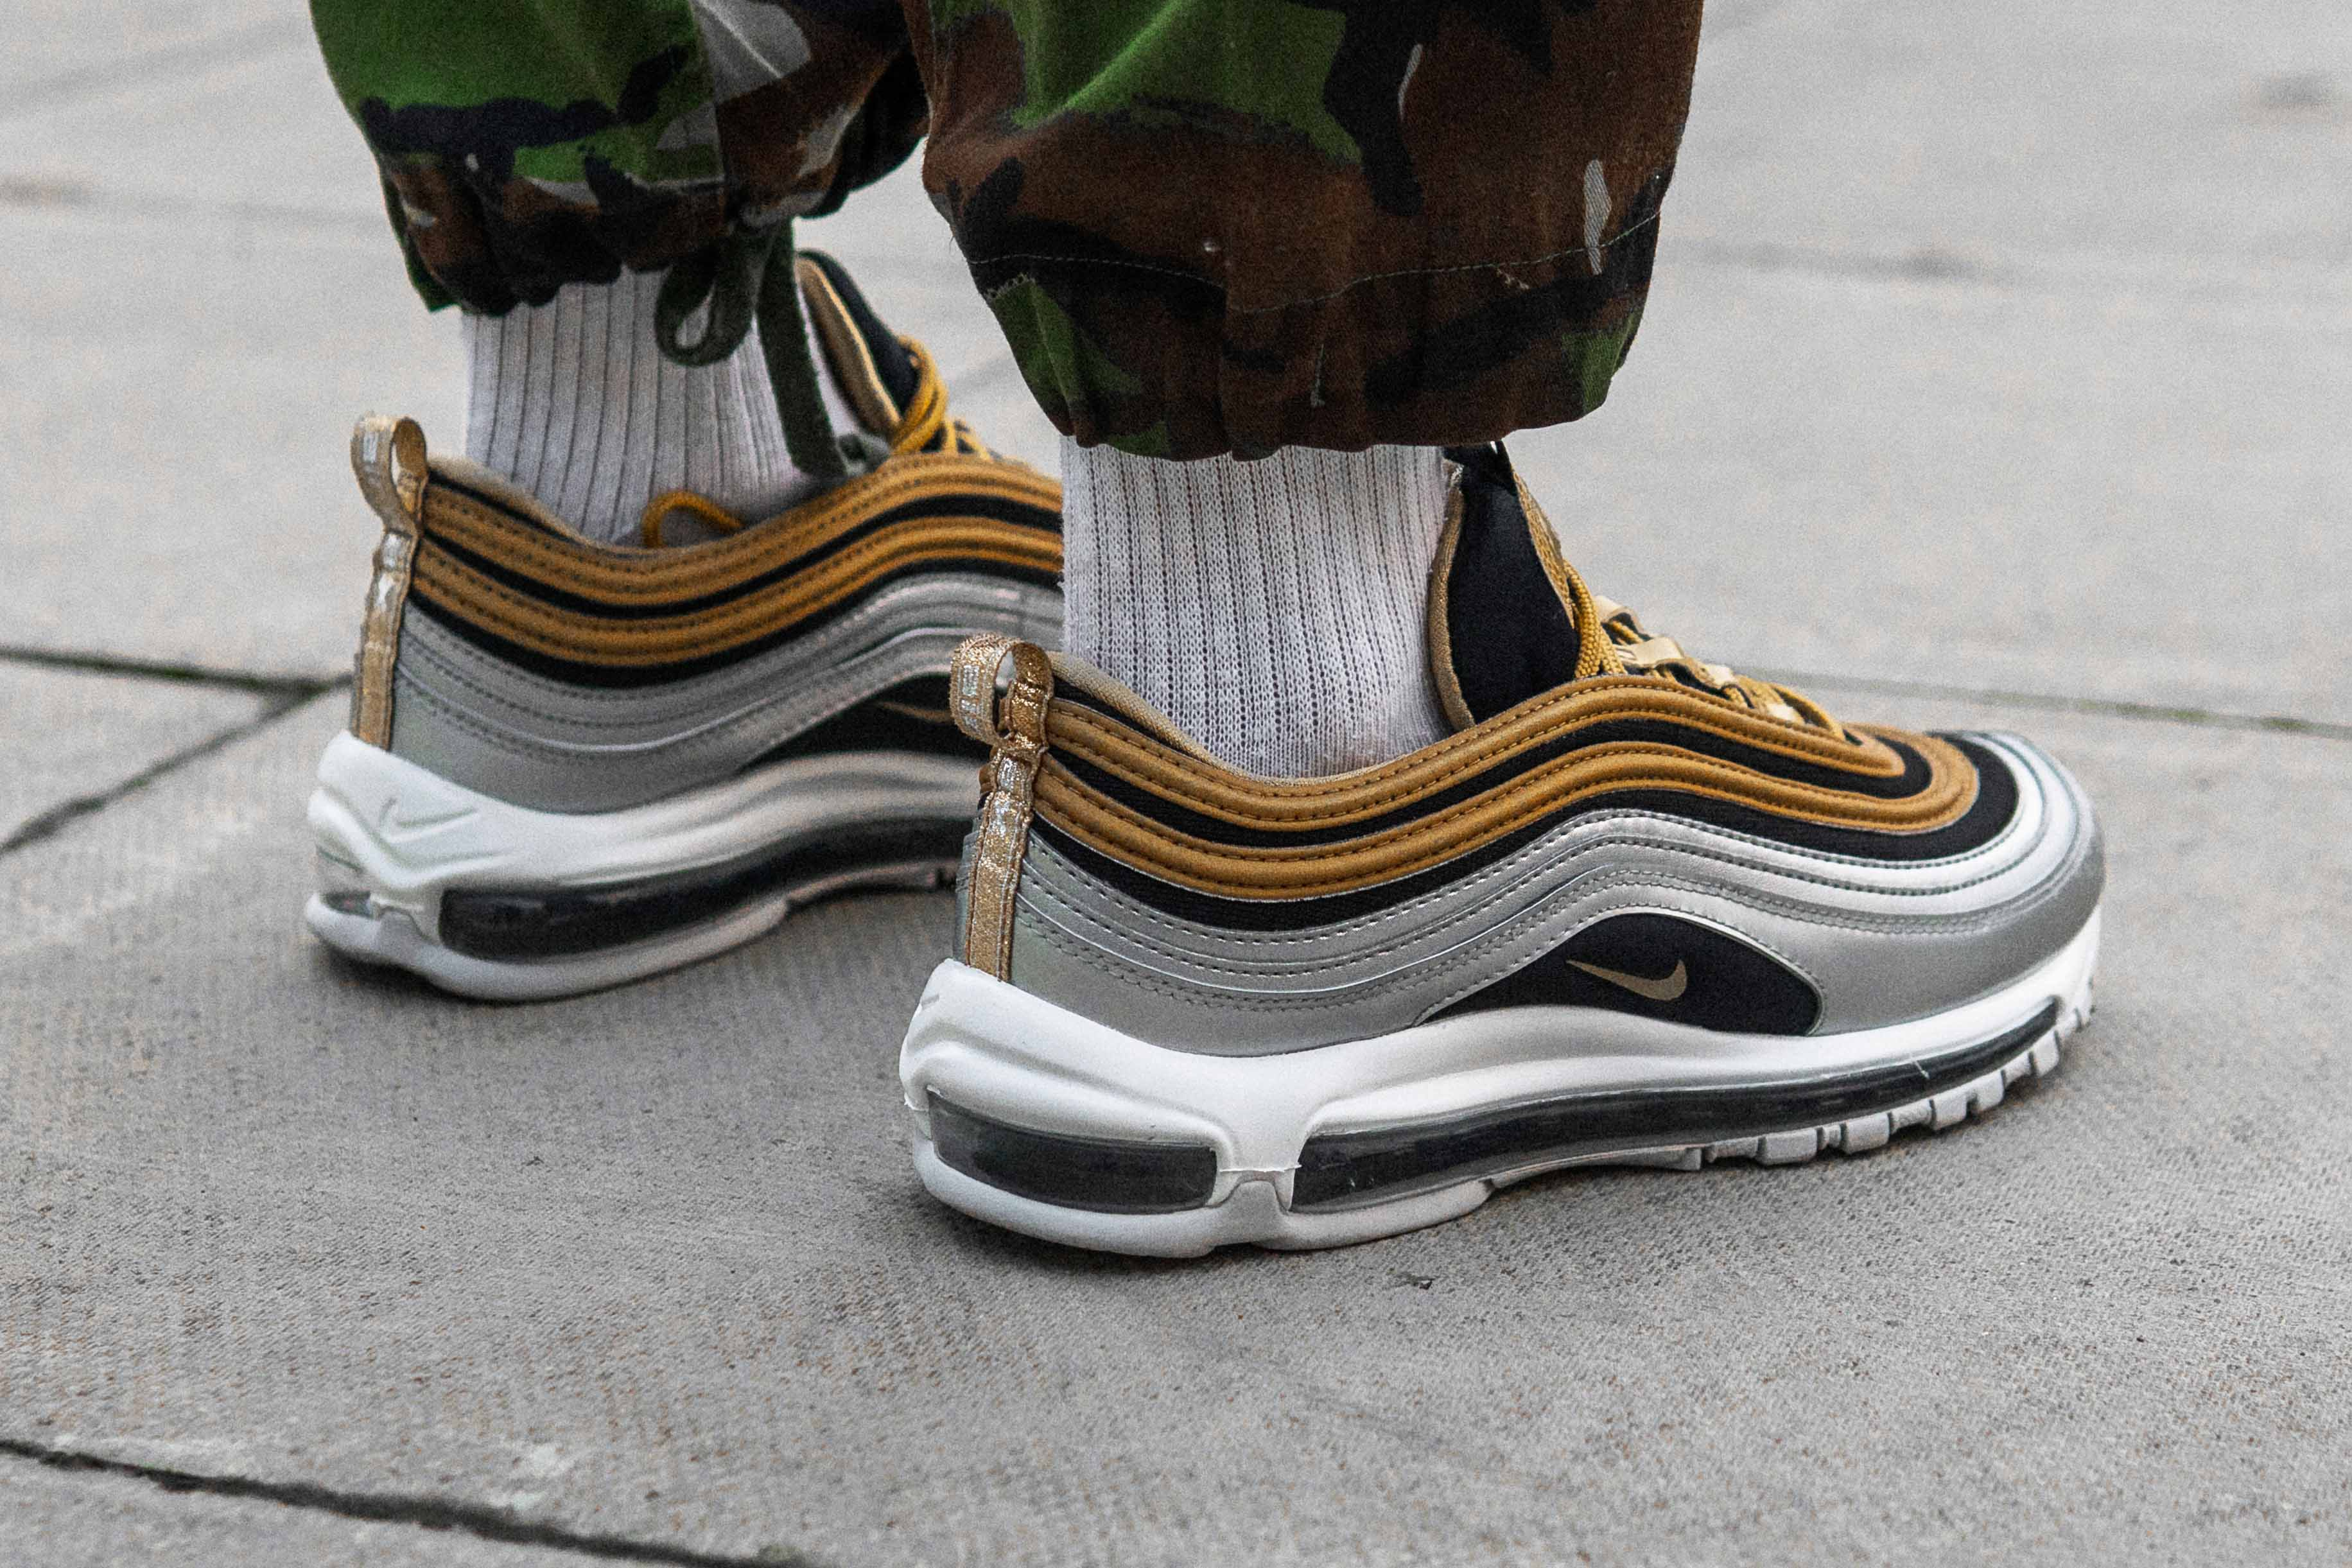 c426c806d2 Save An Incredible £65 On The Nike Air Max 97 Metallic Pack In The ...